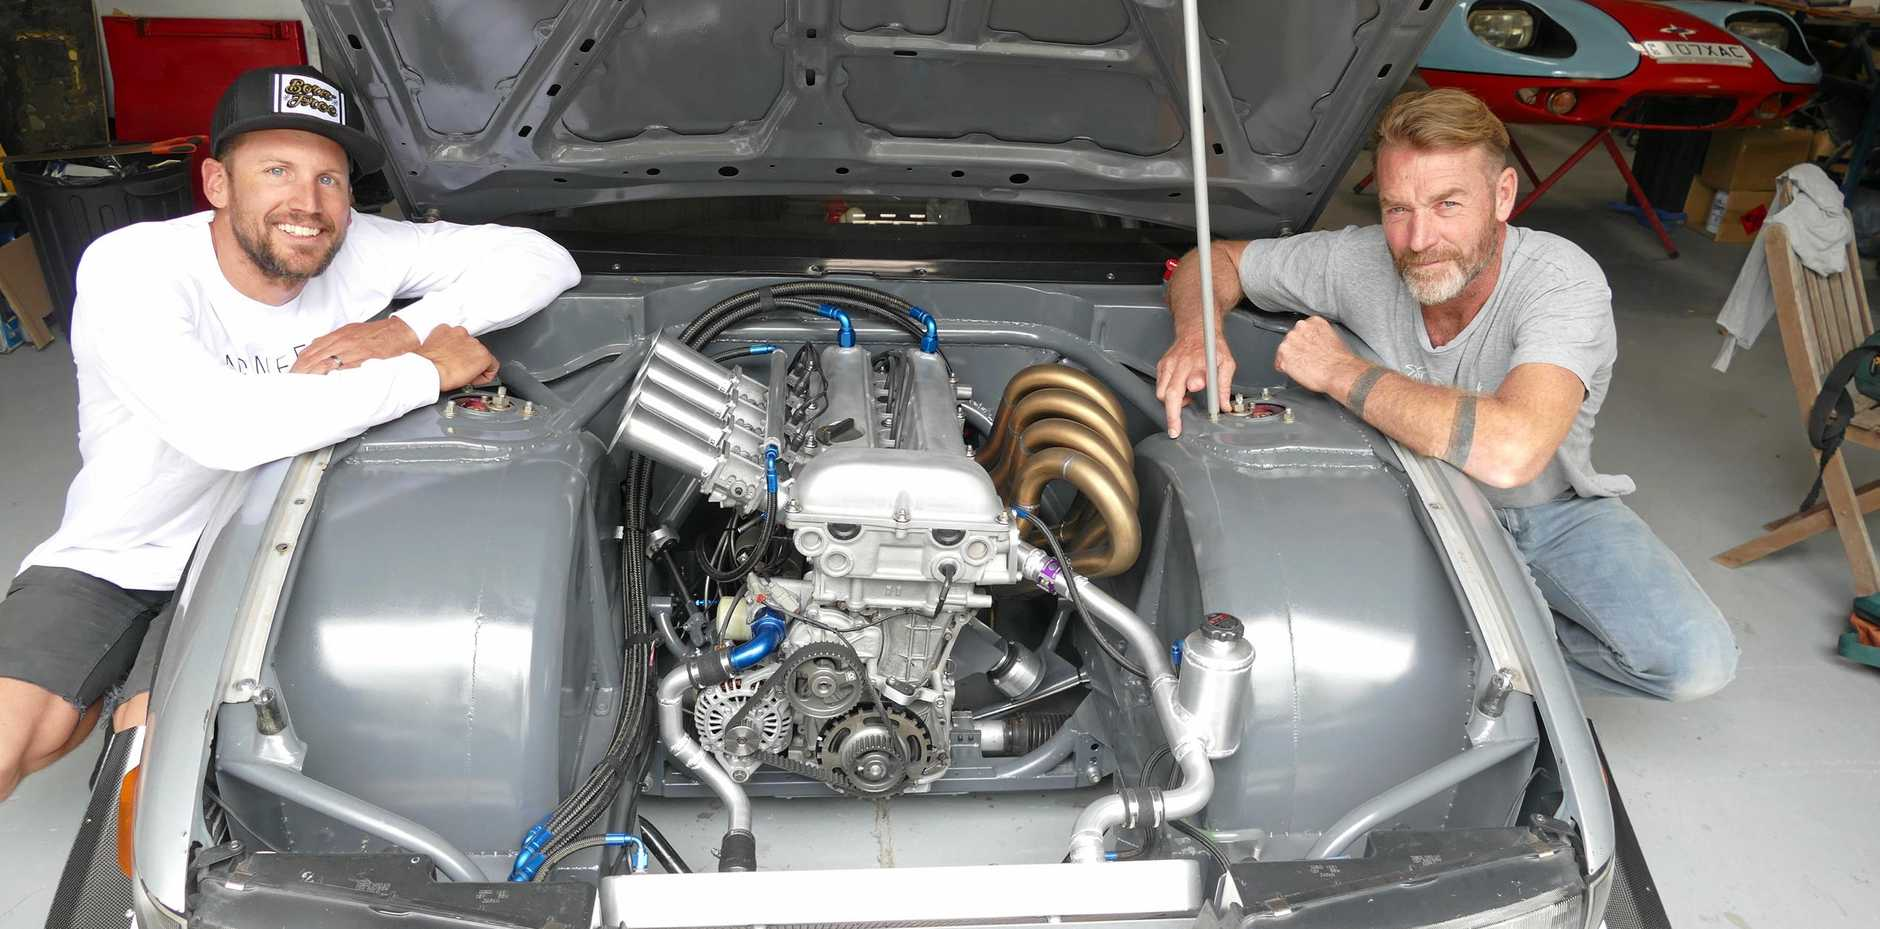 IT'S A SECRET: Nigel Petrie, left, and Warren Cooper look over an engine part they're working on in Nigel's 1989 Nissan Silvia for a prominent Australian automotive company to take onto the international market.